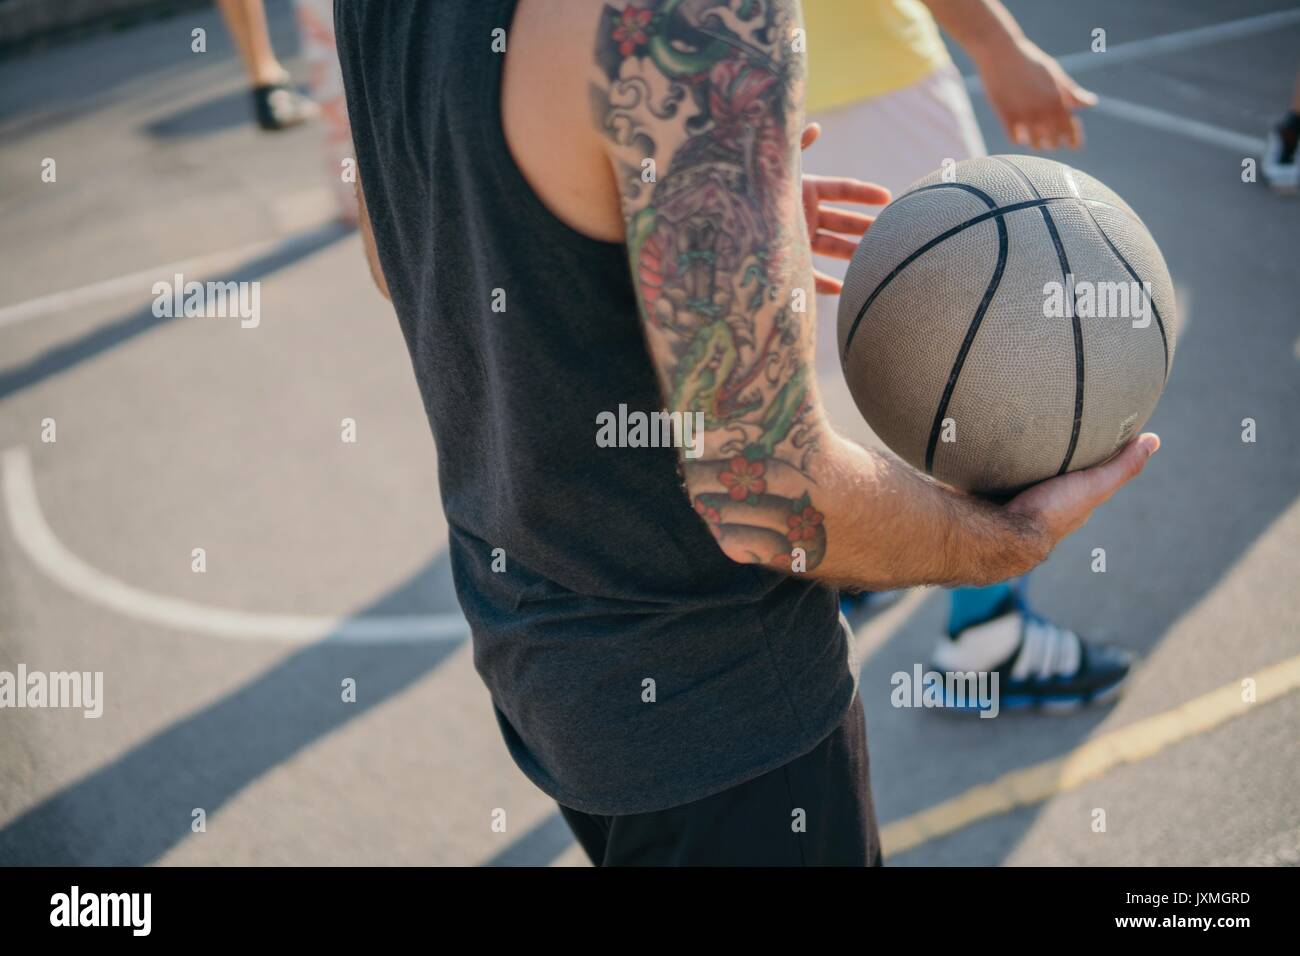 Cropped view of friends on basketball court holding basketball - Stock Image